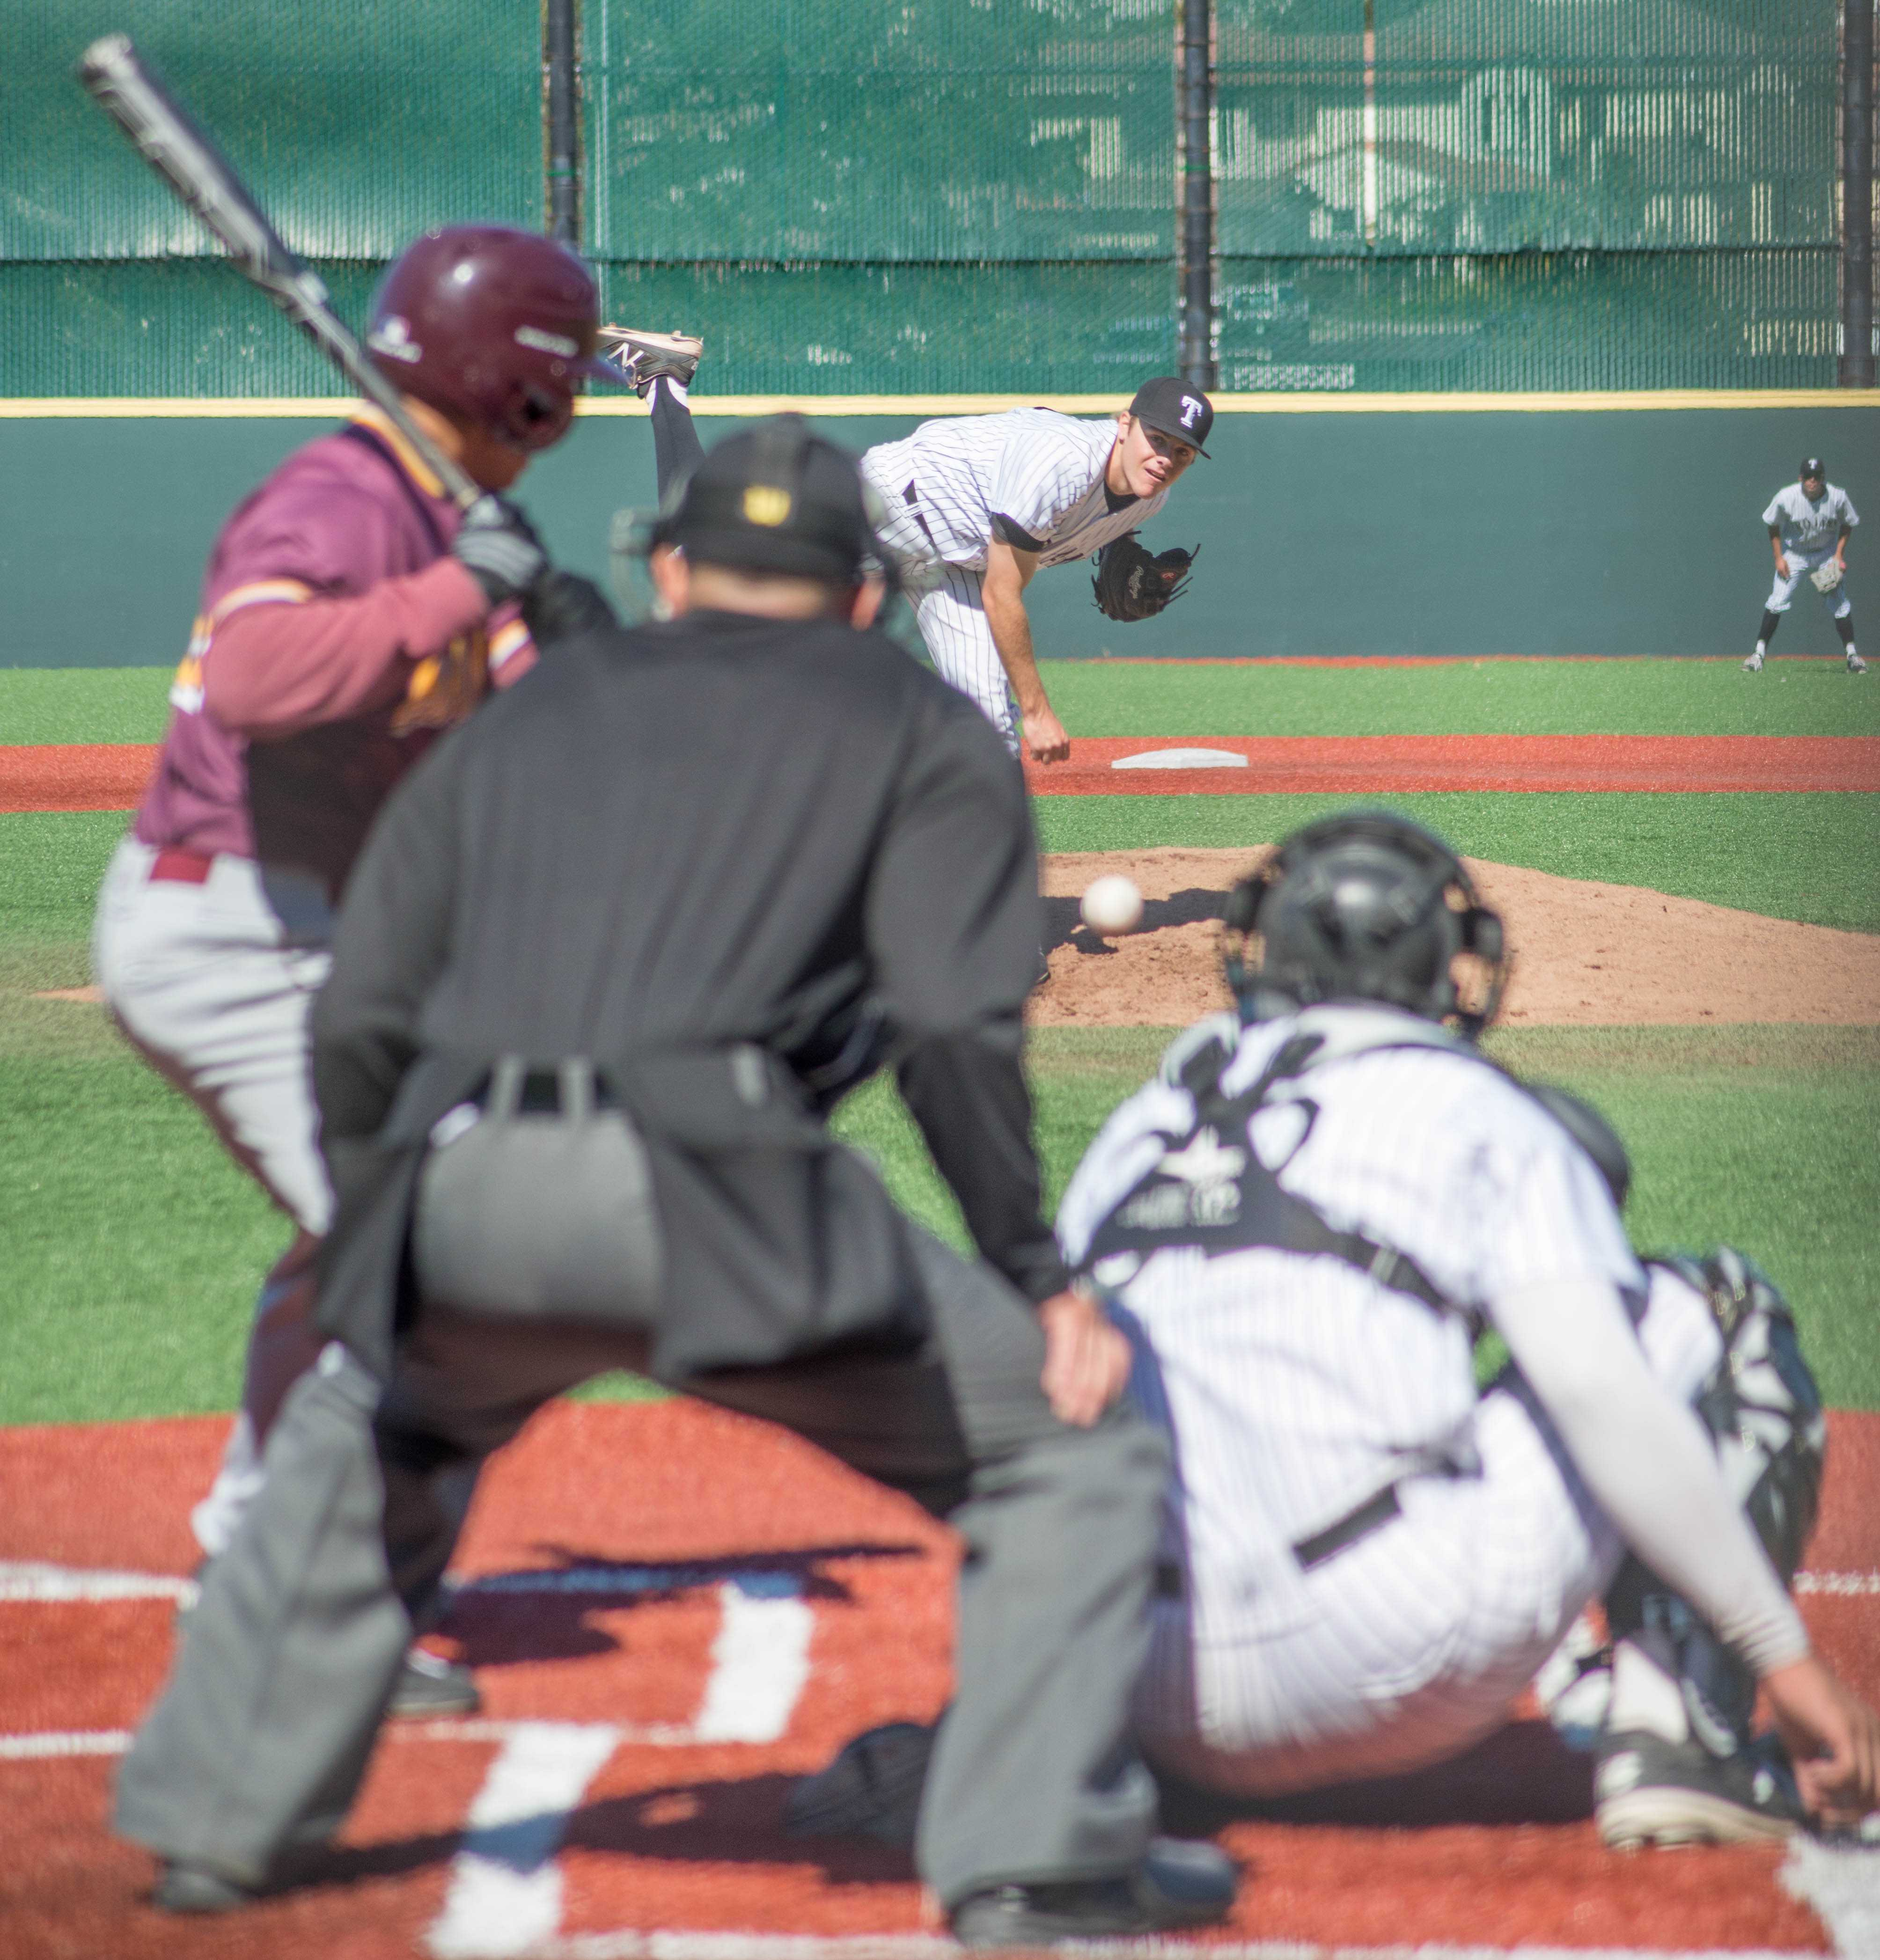 Joe Pratt 14 strikes out batter in the second inning against Hartnell College  on March 11, 2017.